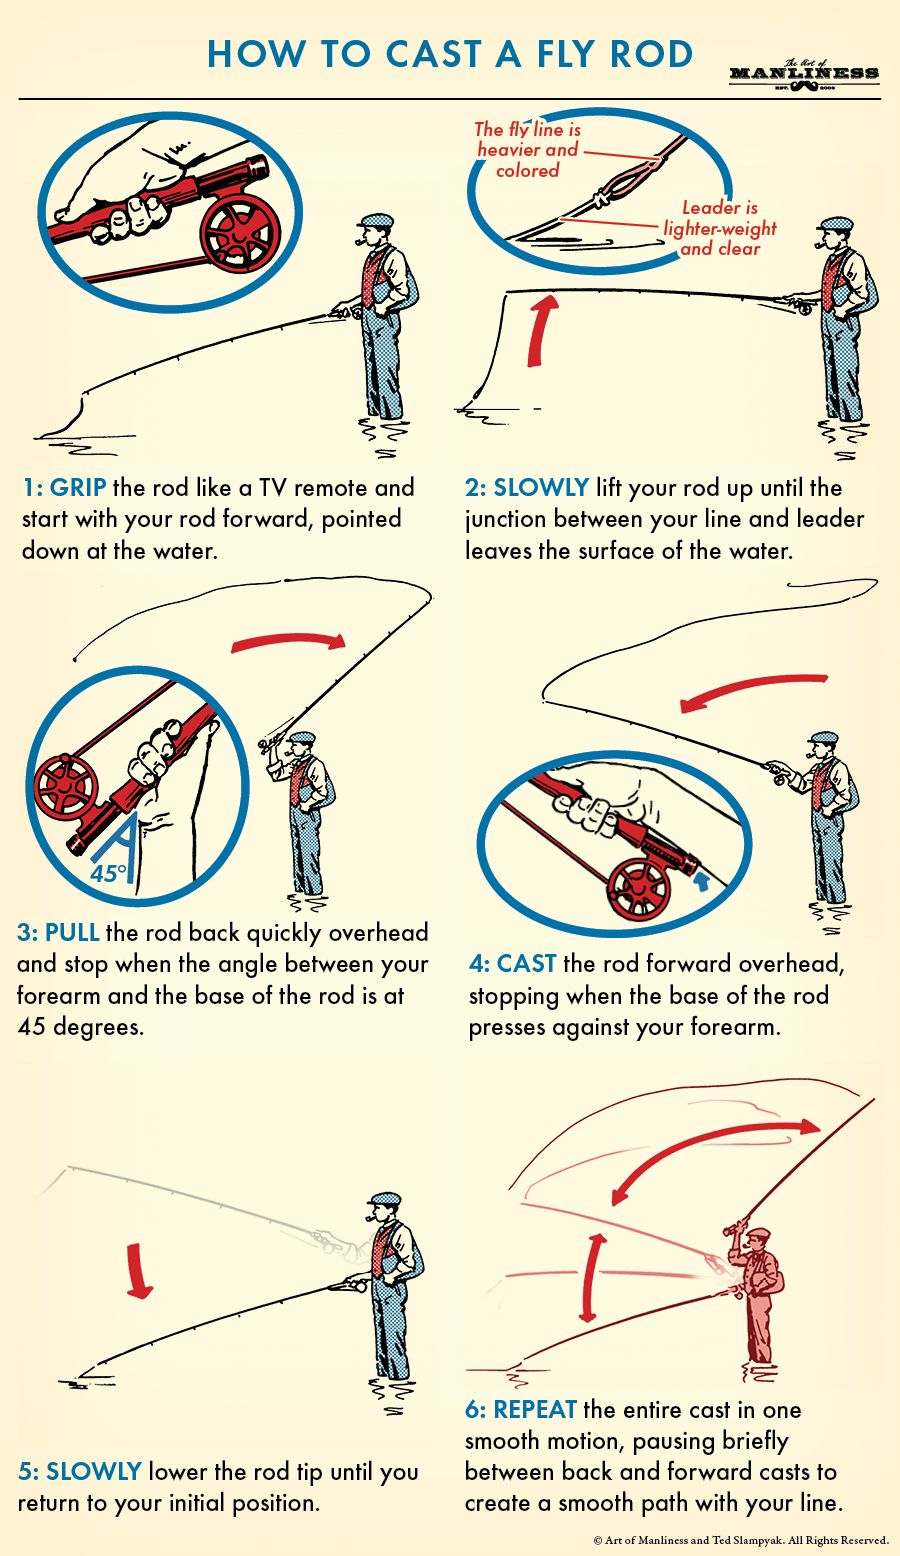 How To Cast A Fly Rod Fly Fishing For Beginners Fly Rods Fly Fishing Tips